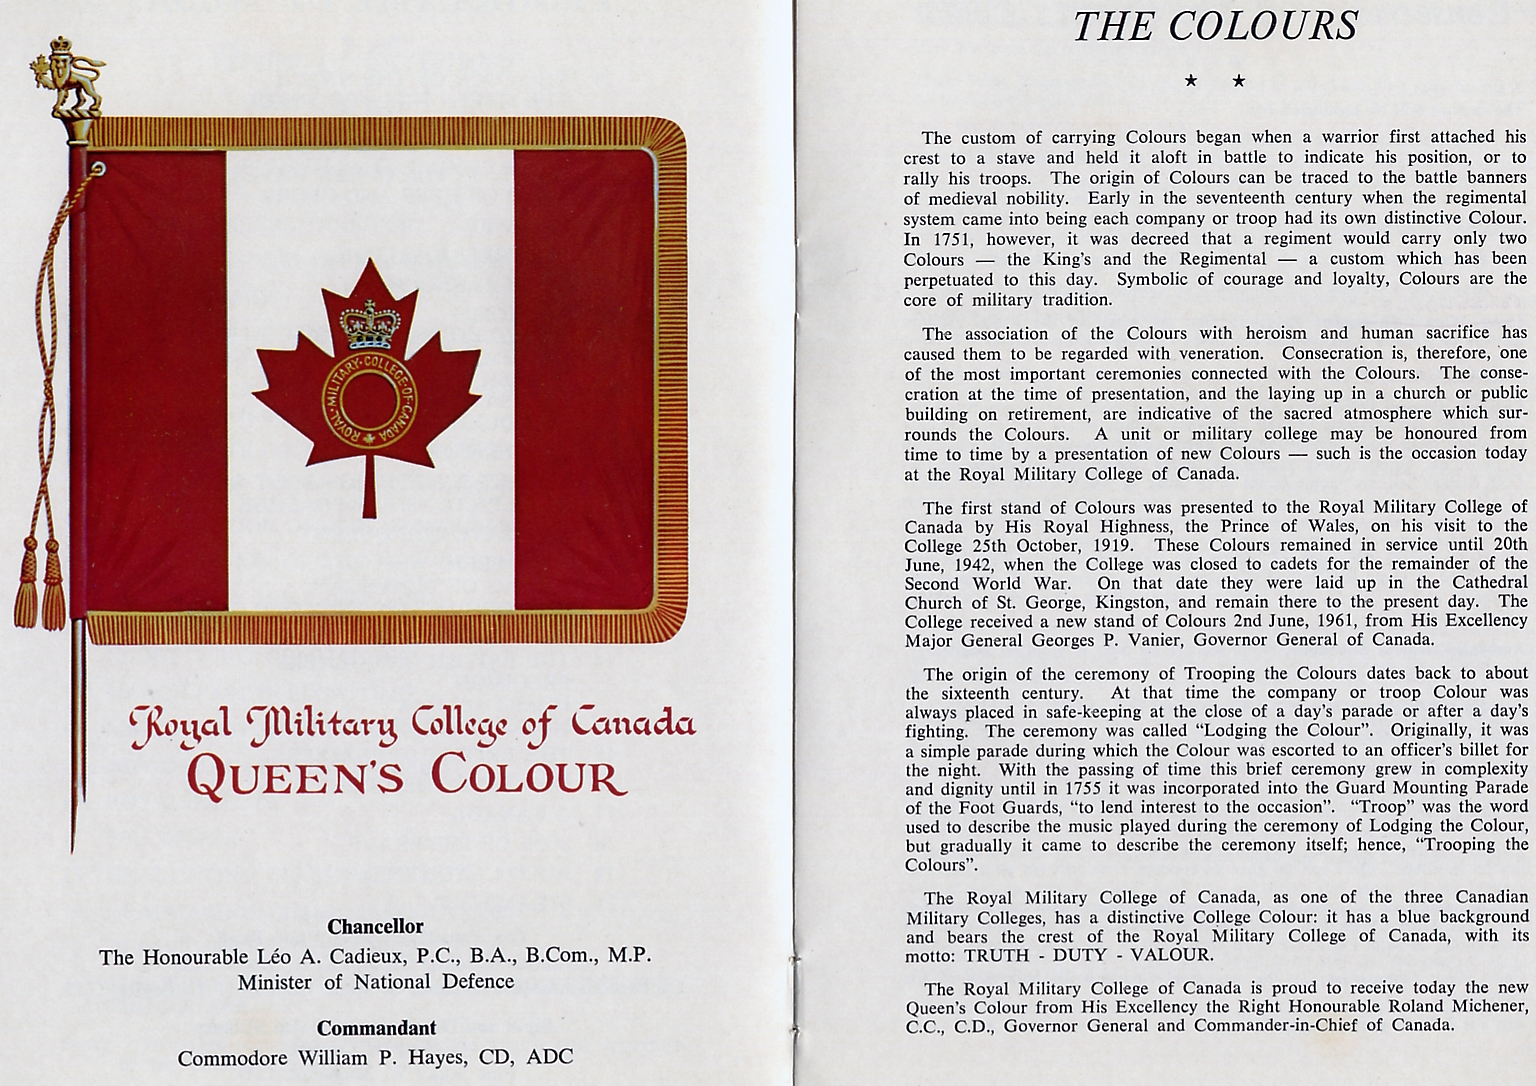 16_RMC-Presentation of Queens Colour-30May 1969-P9-10